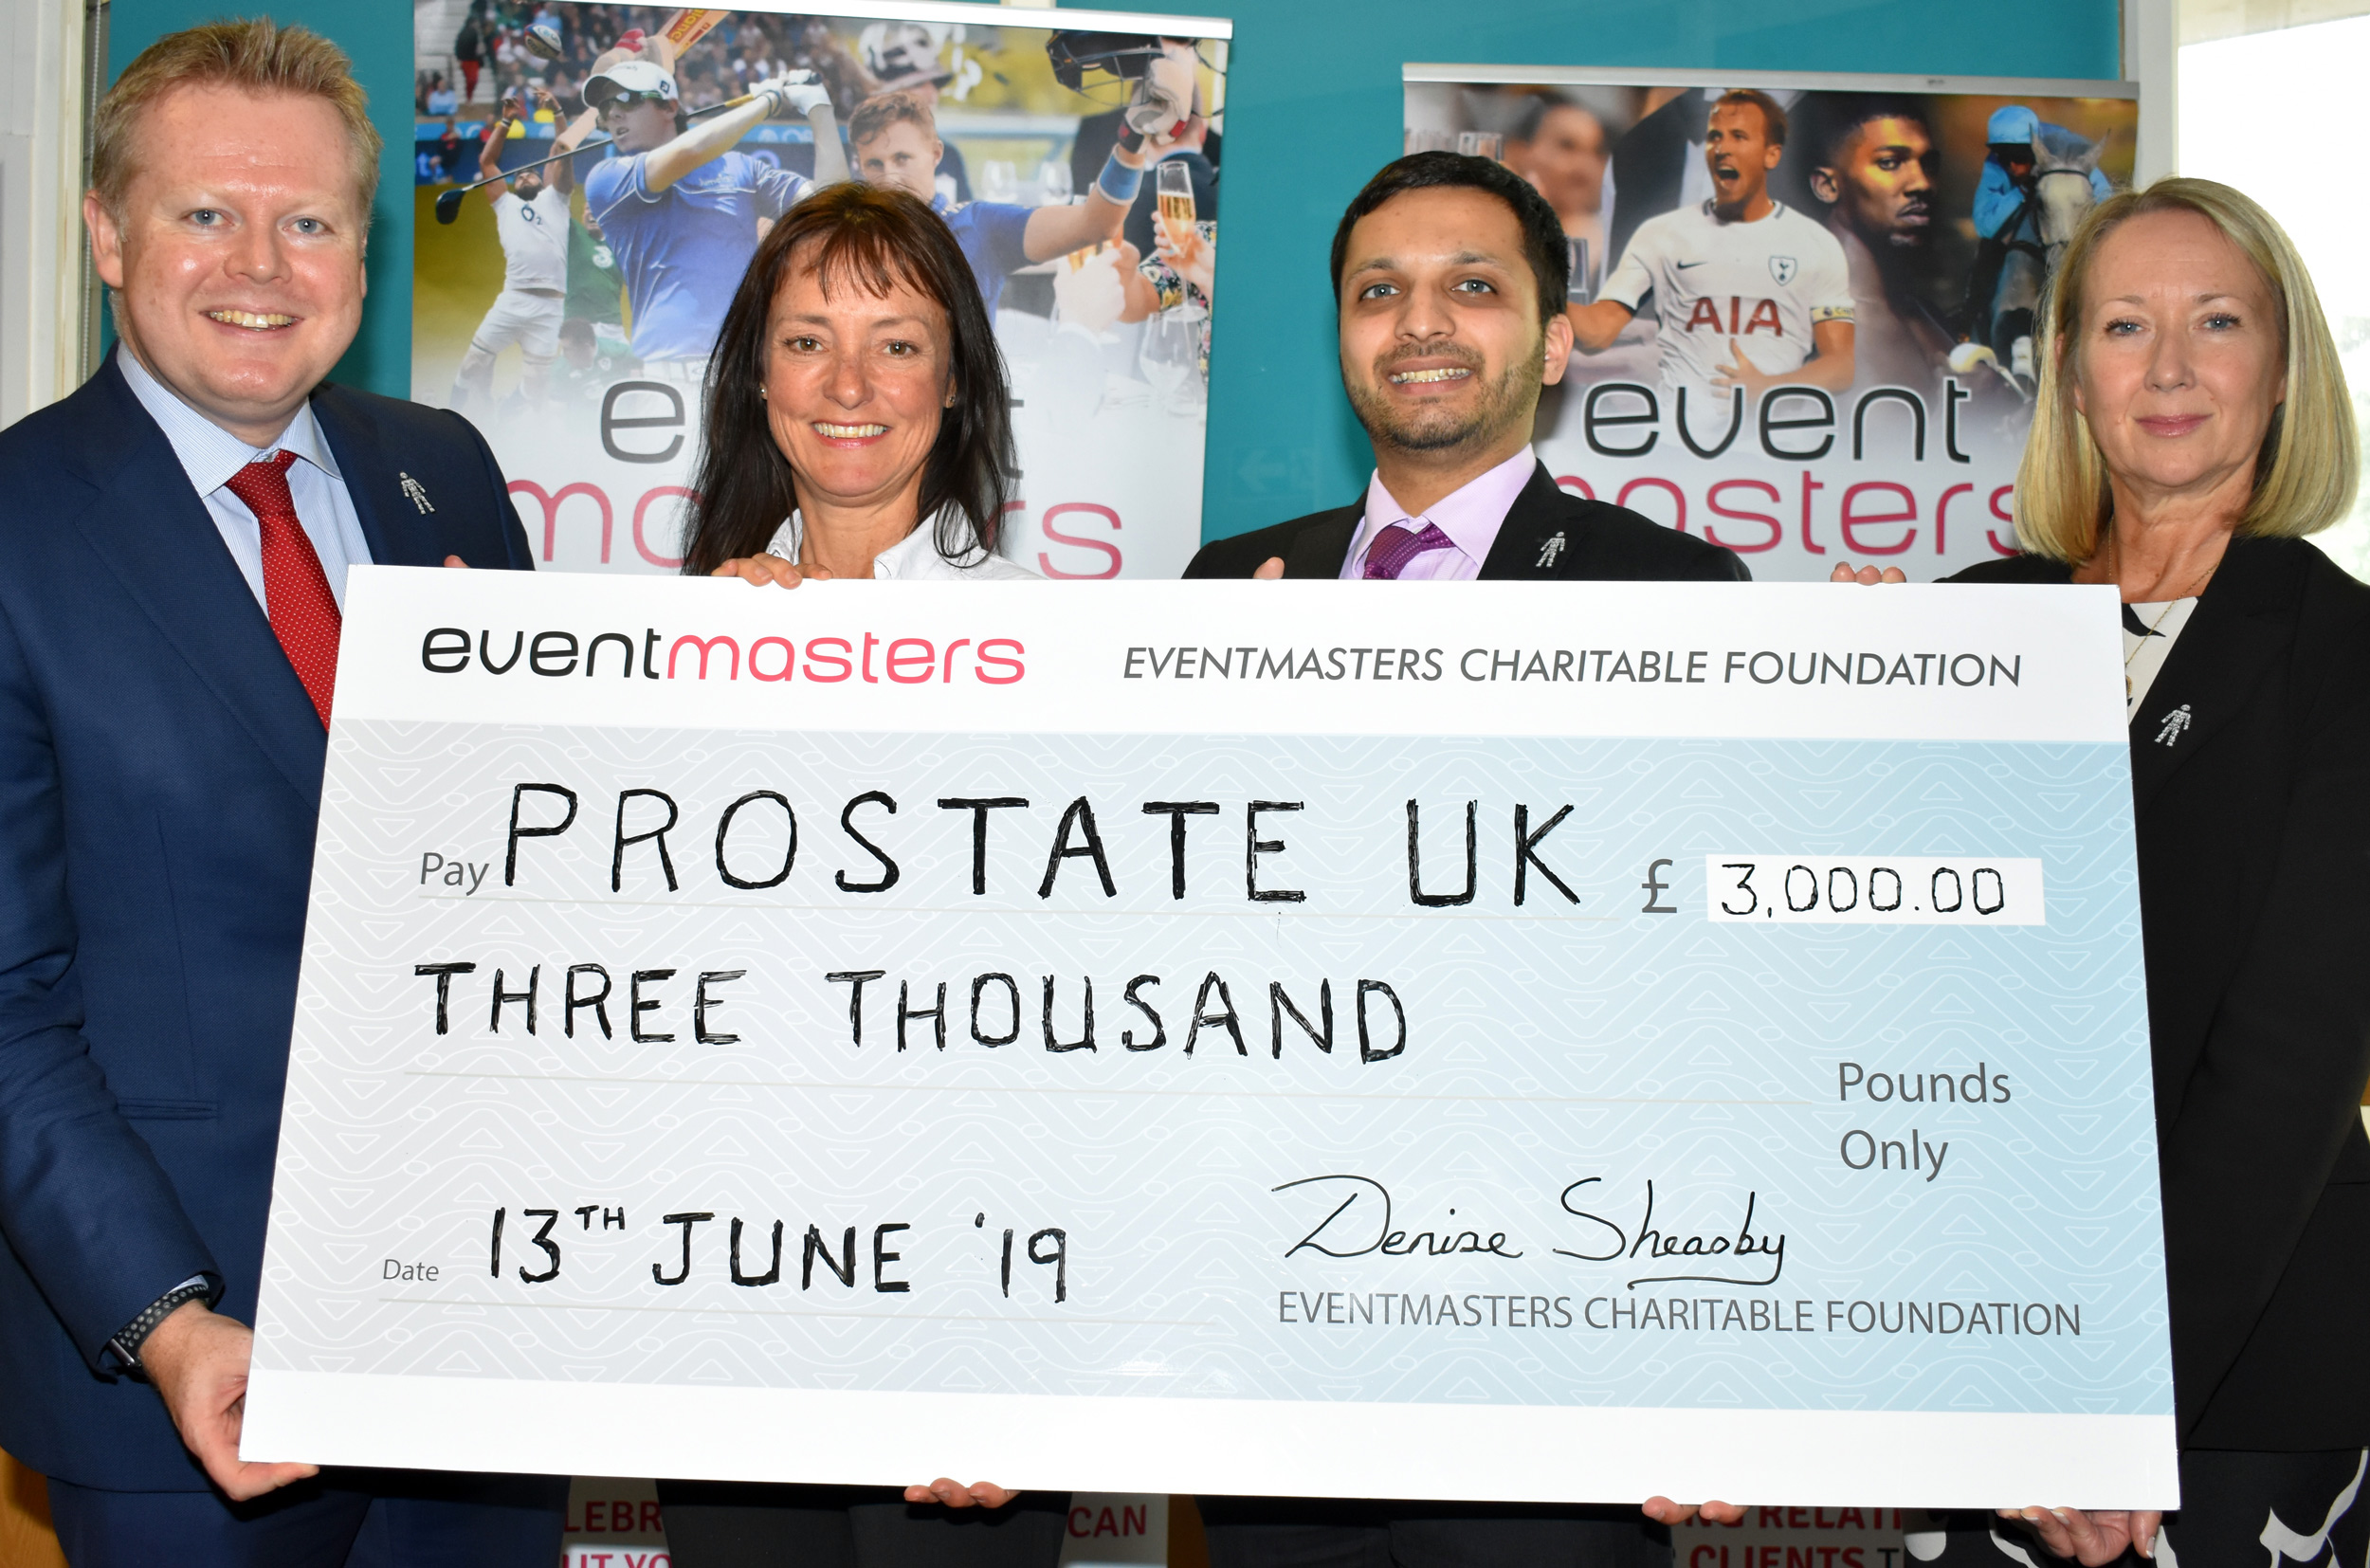 Eventmasters support Prostate Cancer UK at the GBCC Awards Evening